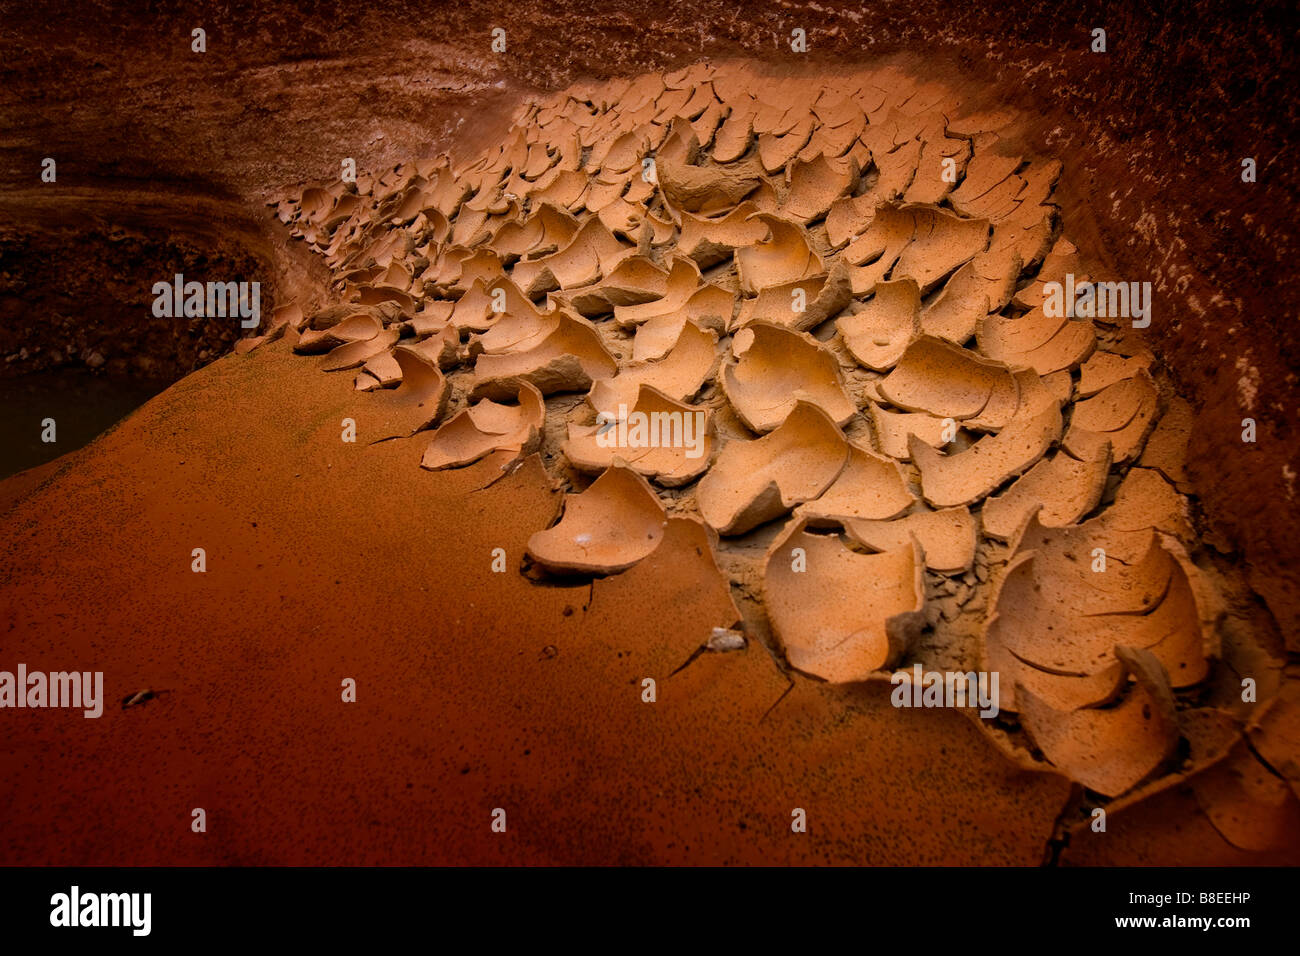 Flakes of dried mud in Egypt - Stock Image